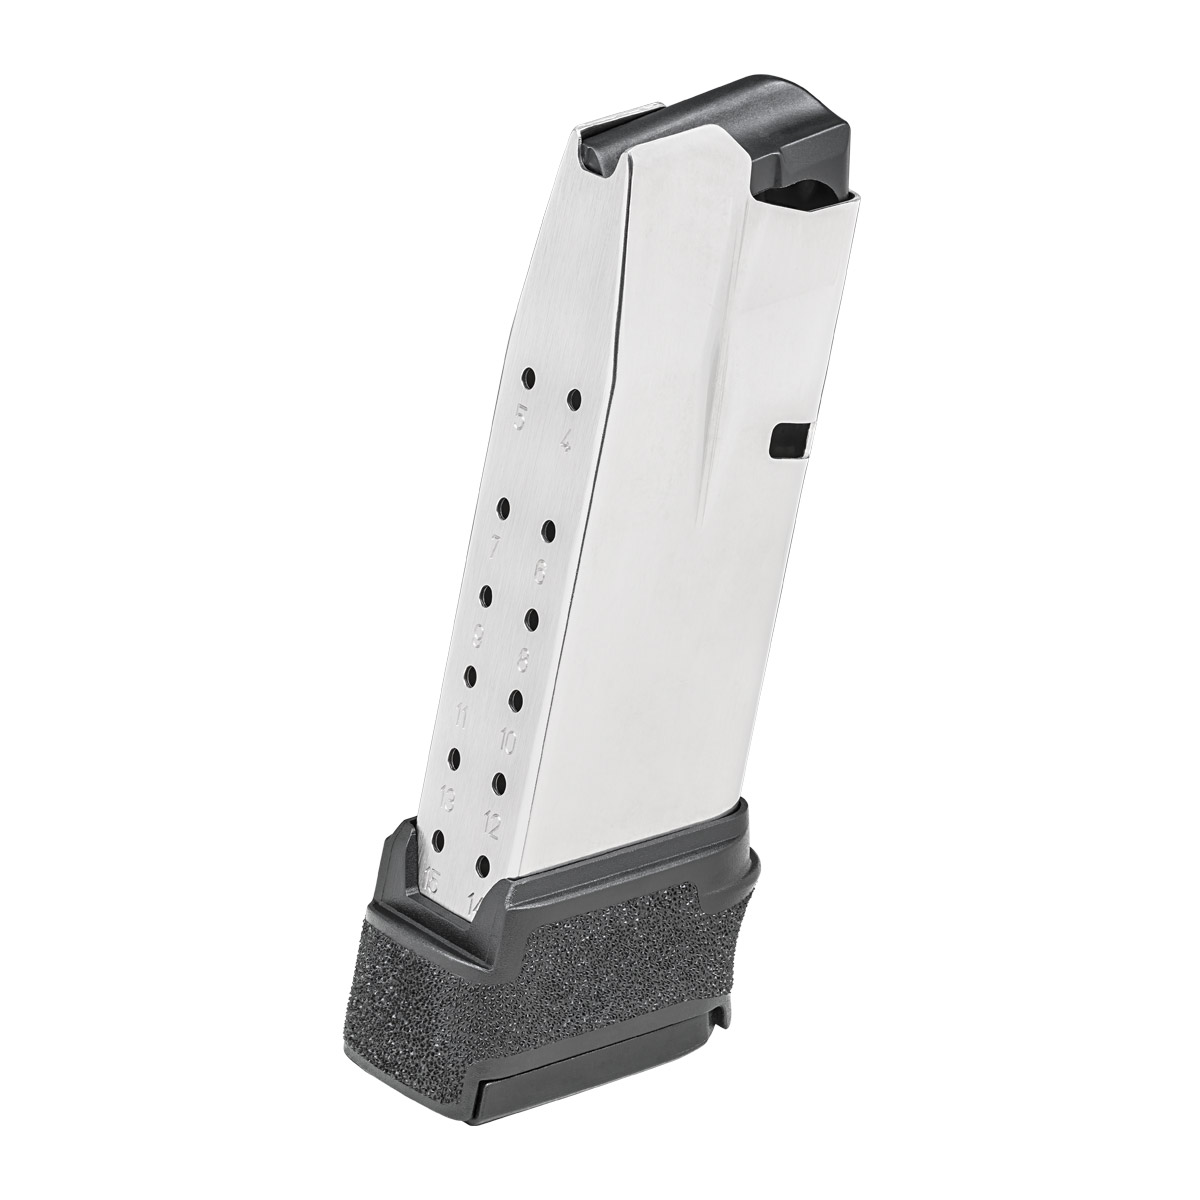 New 15-Round Hellcat Magazines Available from Springfield Armory